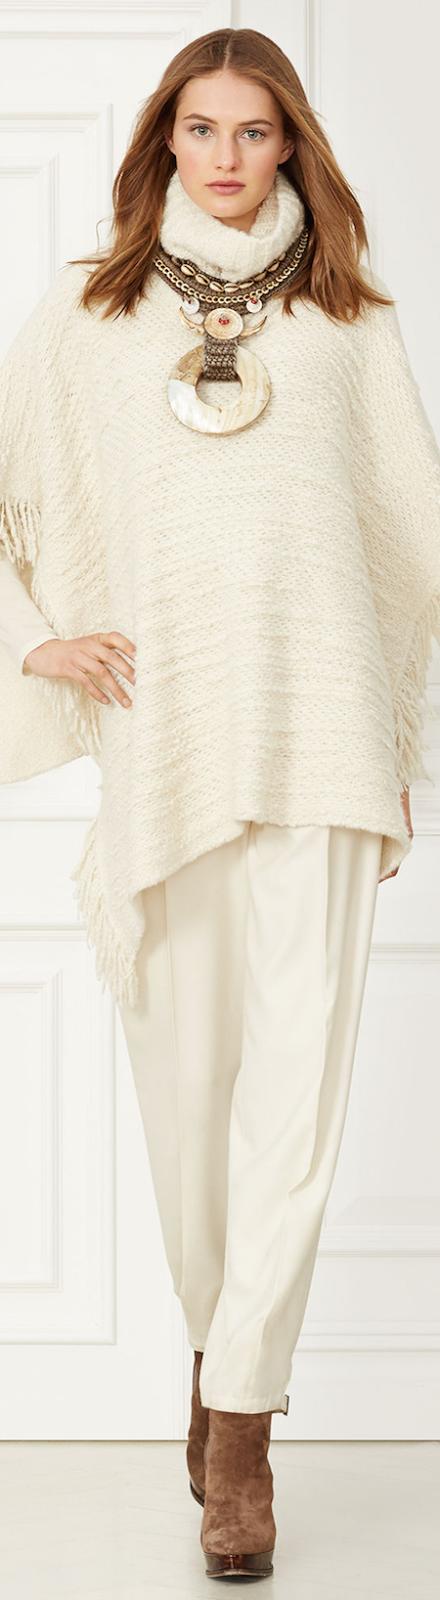 Ralph Lauren BOUCLÉ TURTLENECK PONCHO ROVING CREAM